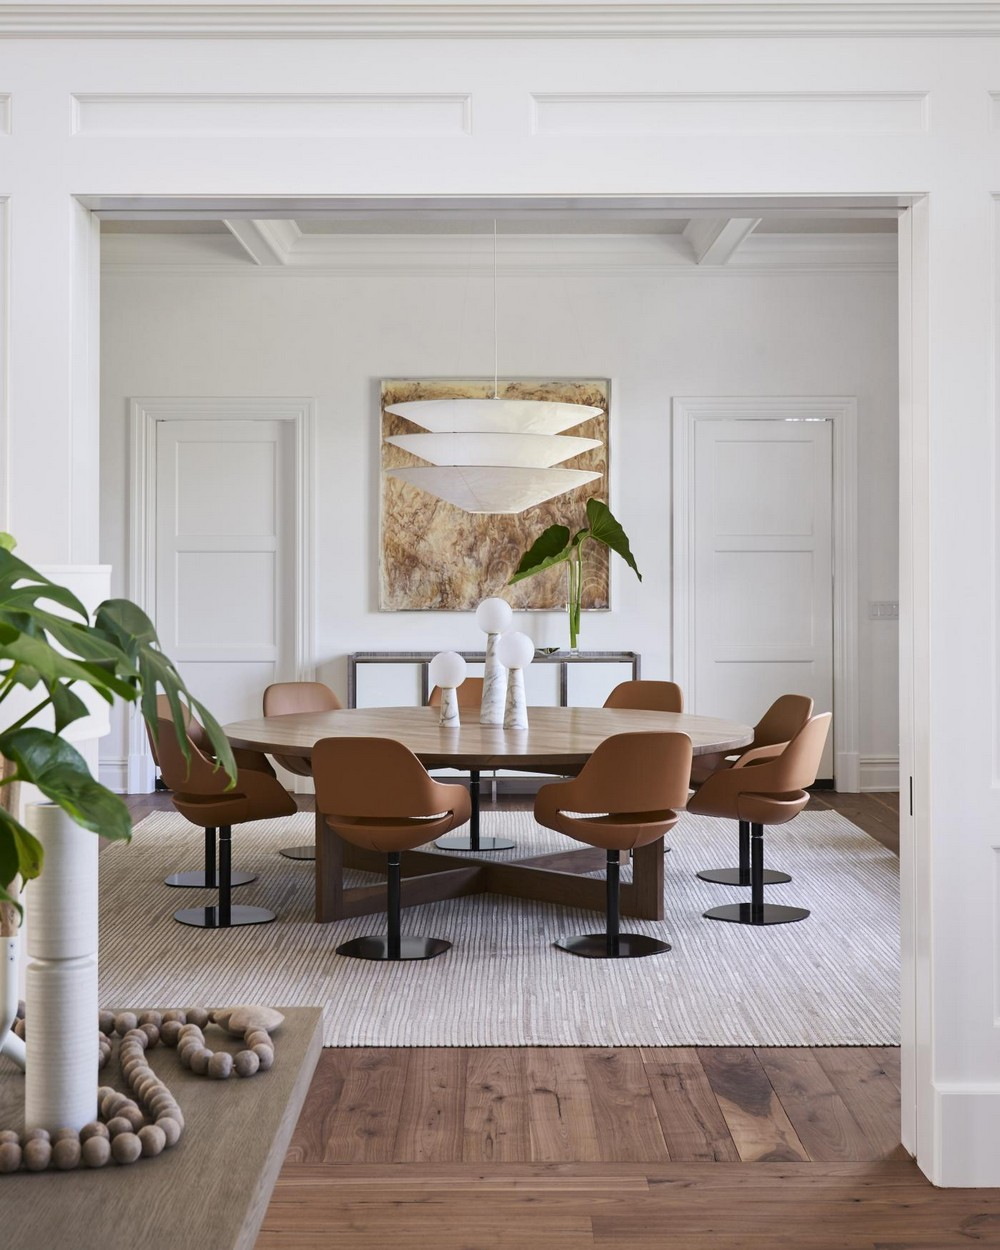 Relaxed, Sophisticated, Chic: Dining Rooms by Timothy Godbold timothy godbold Relaxed, Sophisticated, Chic: Dining Rooms by Timothy Godbold 5 incollect